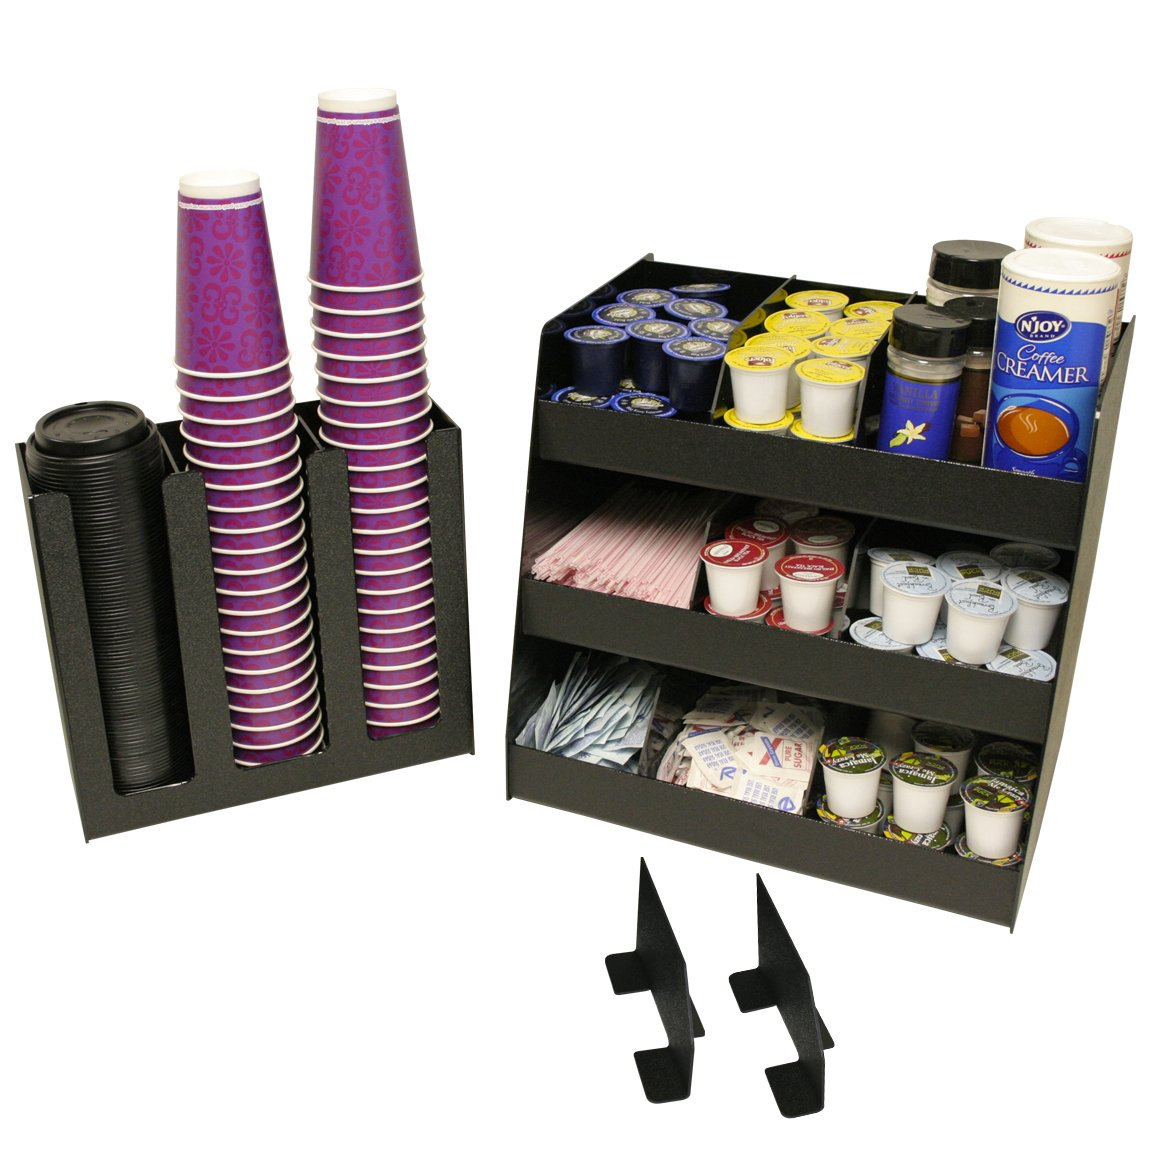 2 Piece Combo, Coffee Condiment & K-Cup Organizer & a Cup or Lid Holder...for One Price. Great Presentation. 8 Extra Tall Movable Dividers Make Organizing Easy. Proudly Made in the USA! by PPM.